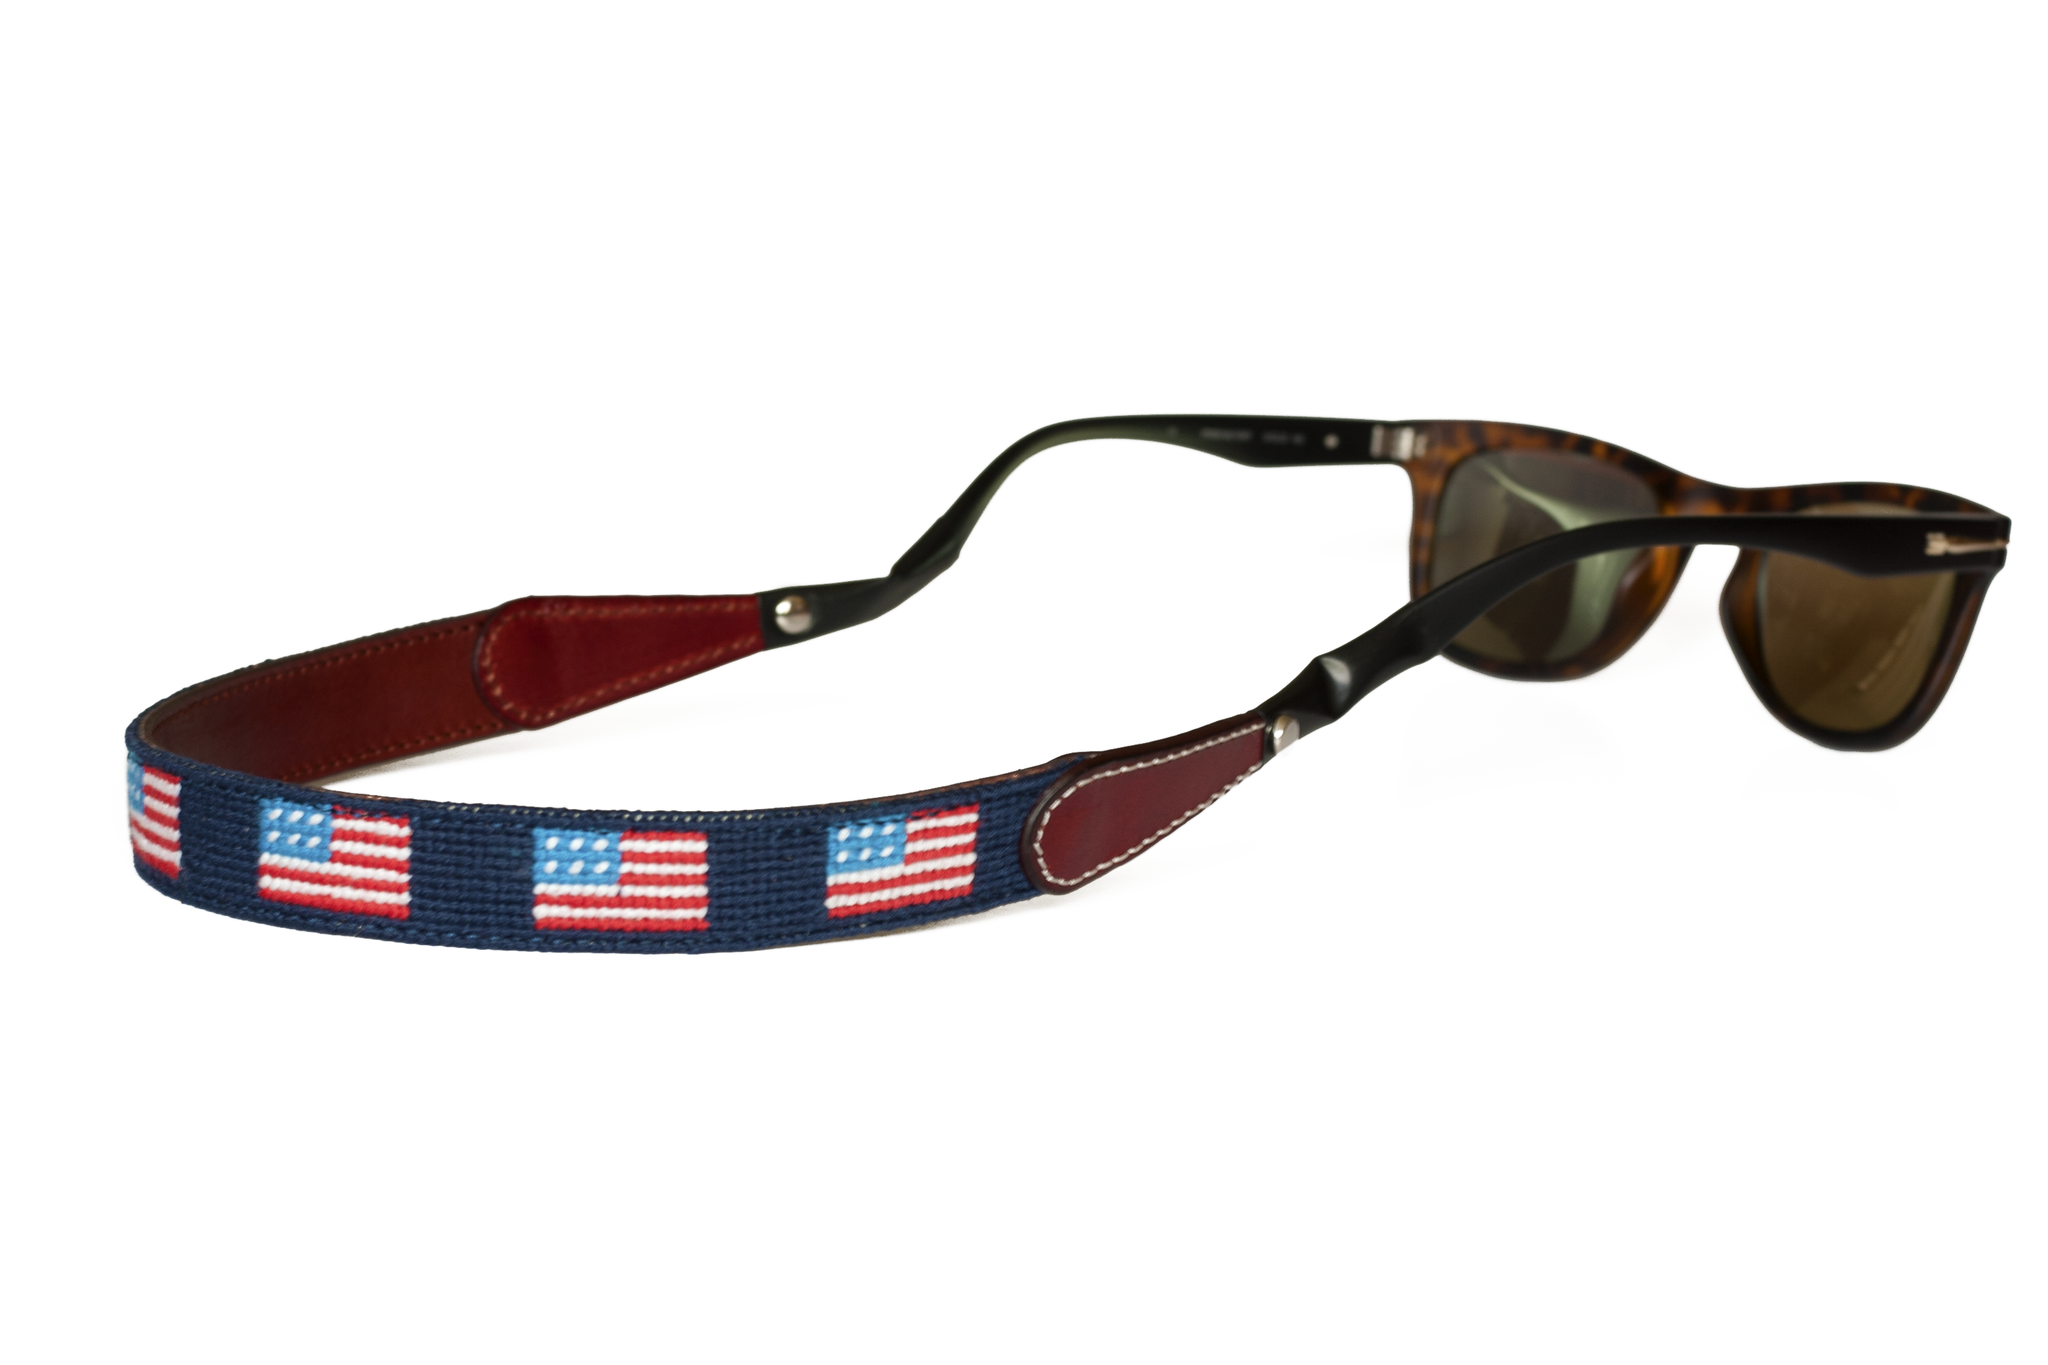 ... Asher Riley, Needlepoint, American Flag, Sunglass Straps ...